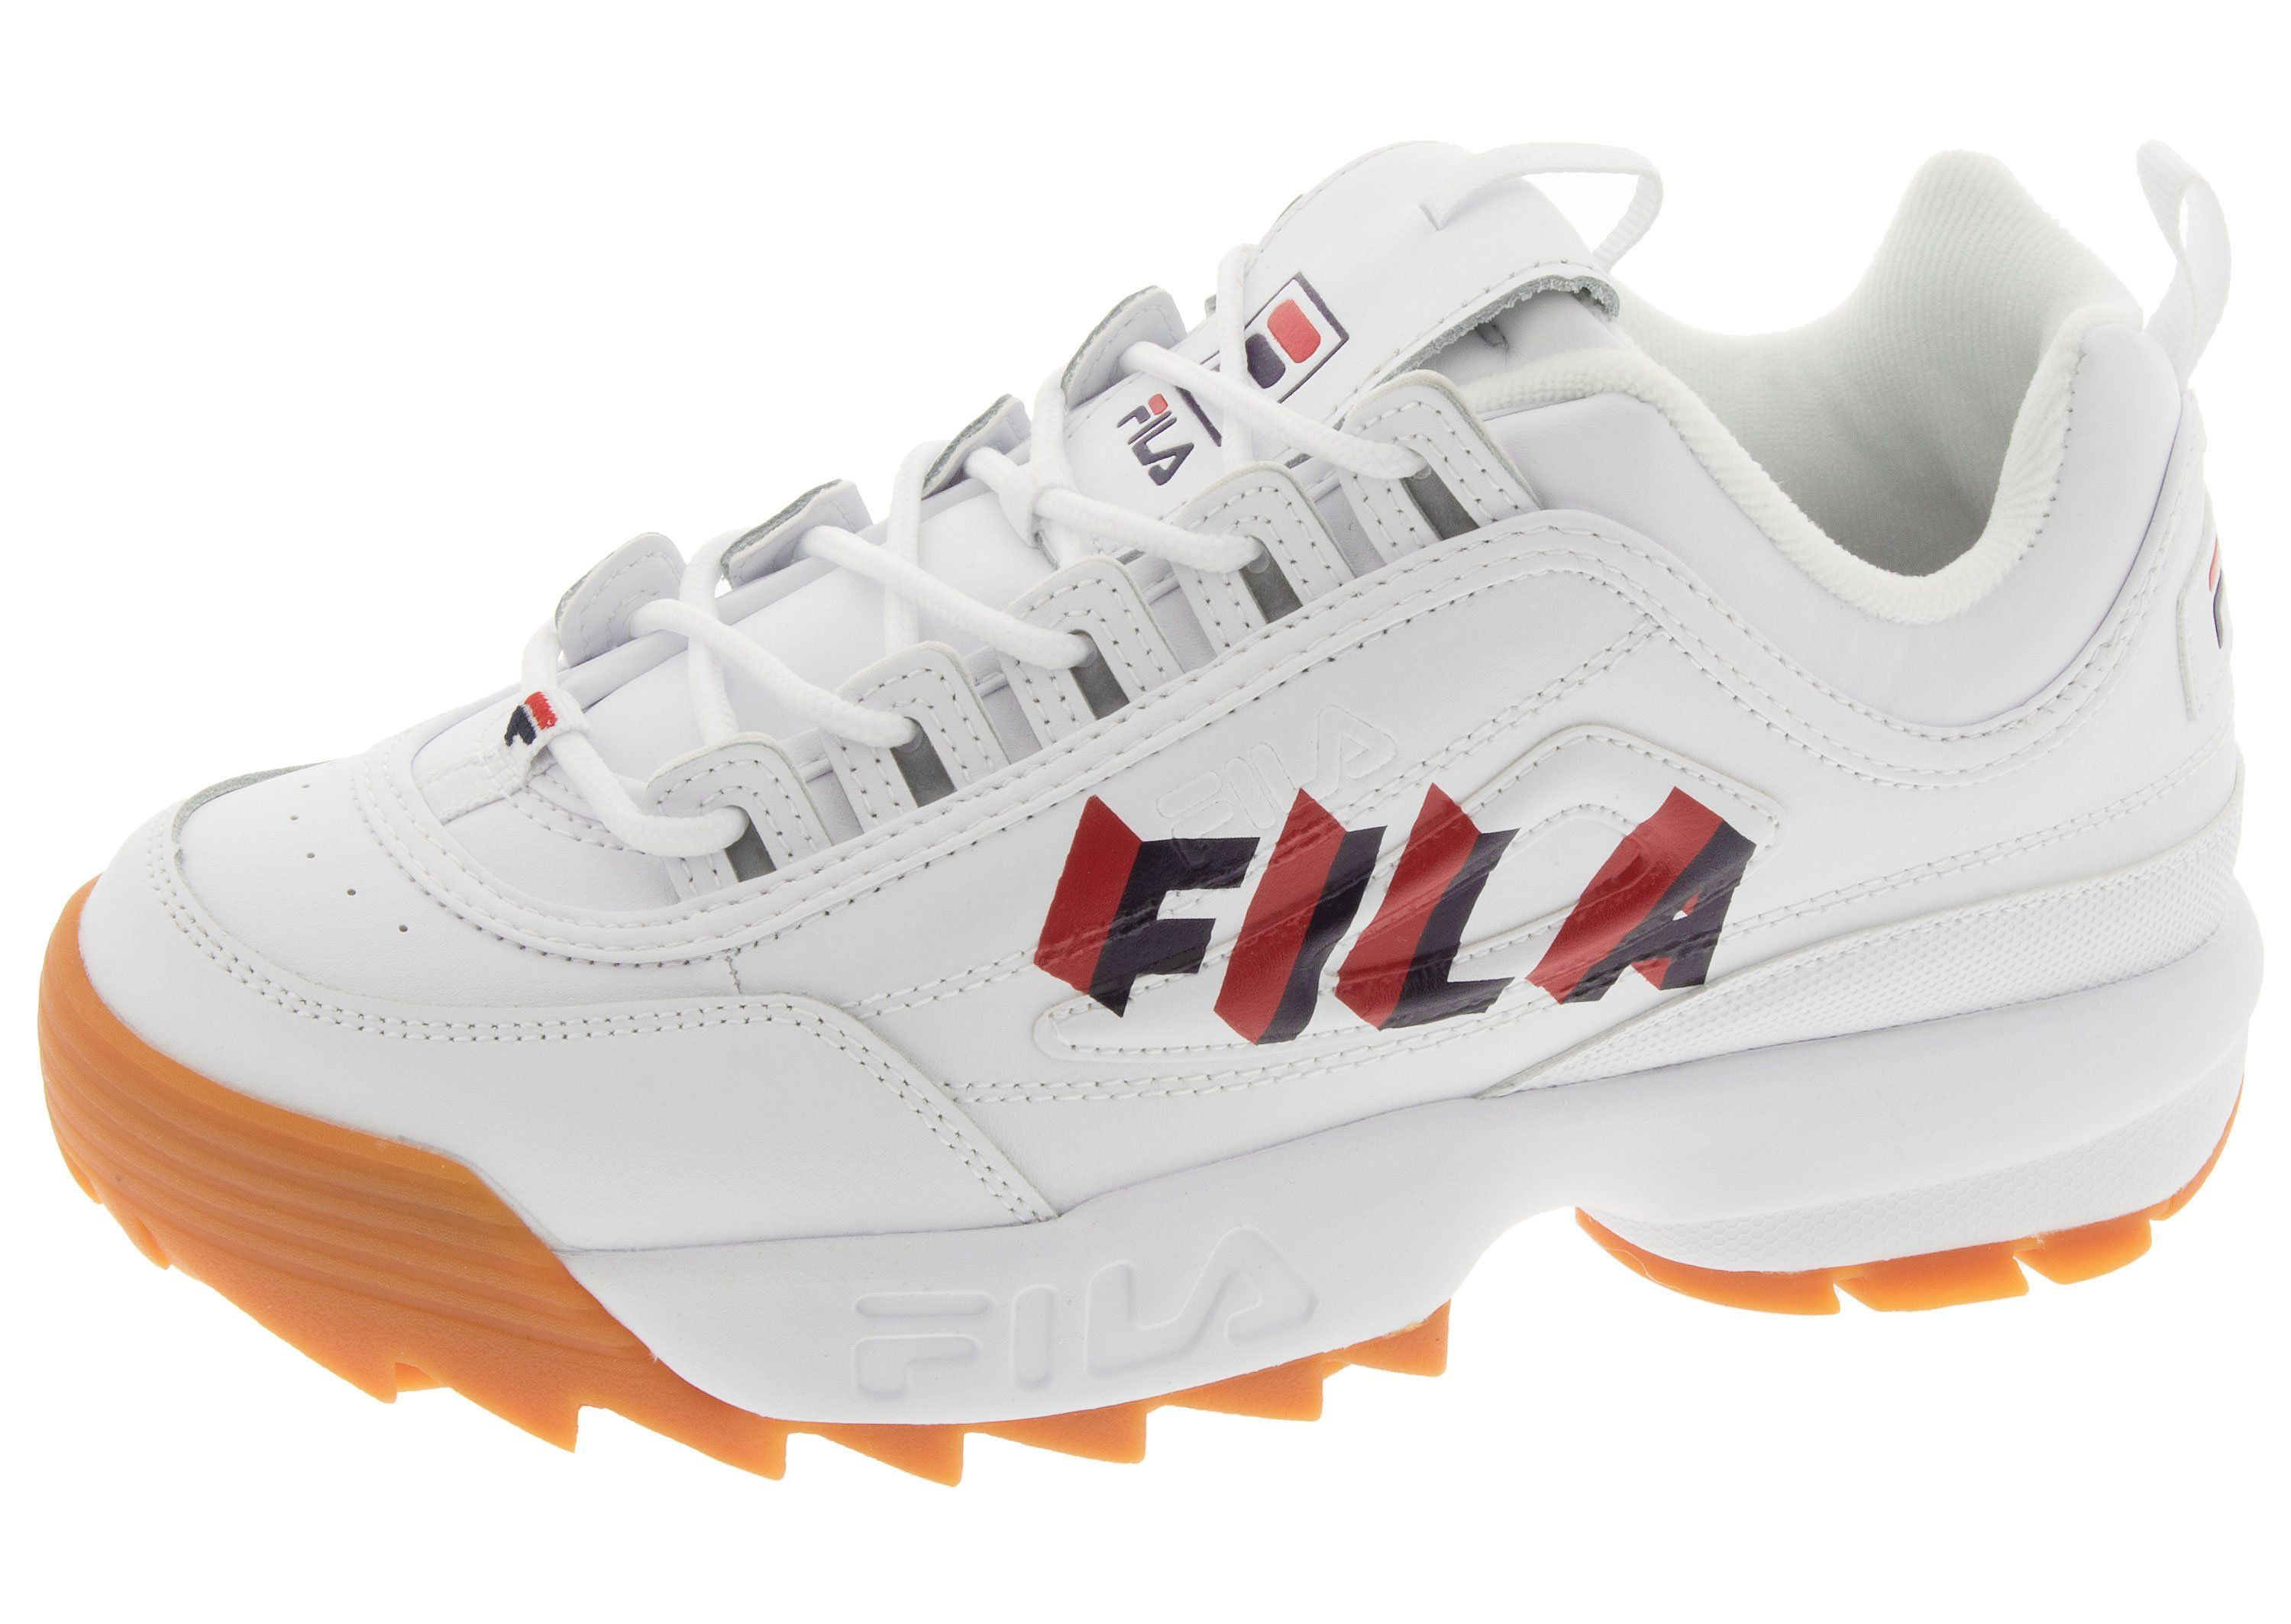 FILA Disruptor II Perspective White Fila Navy Fila Red